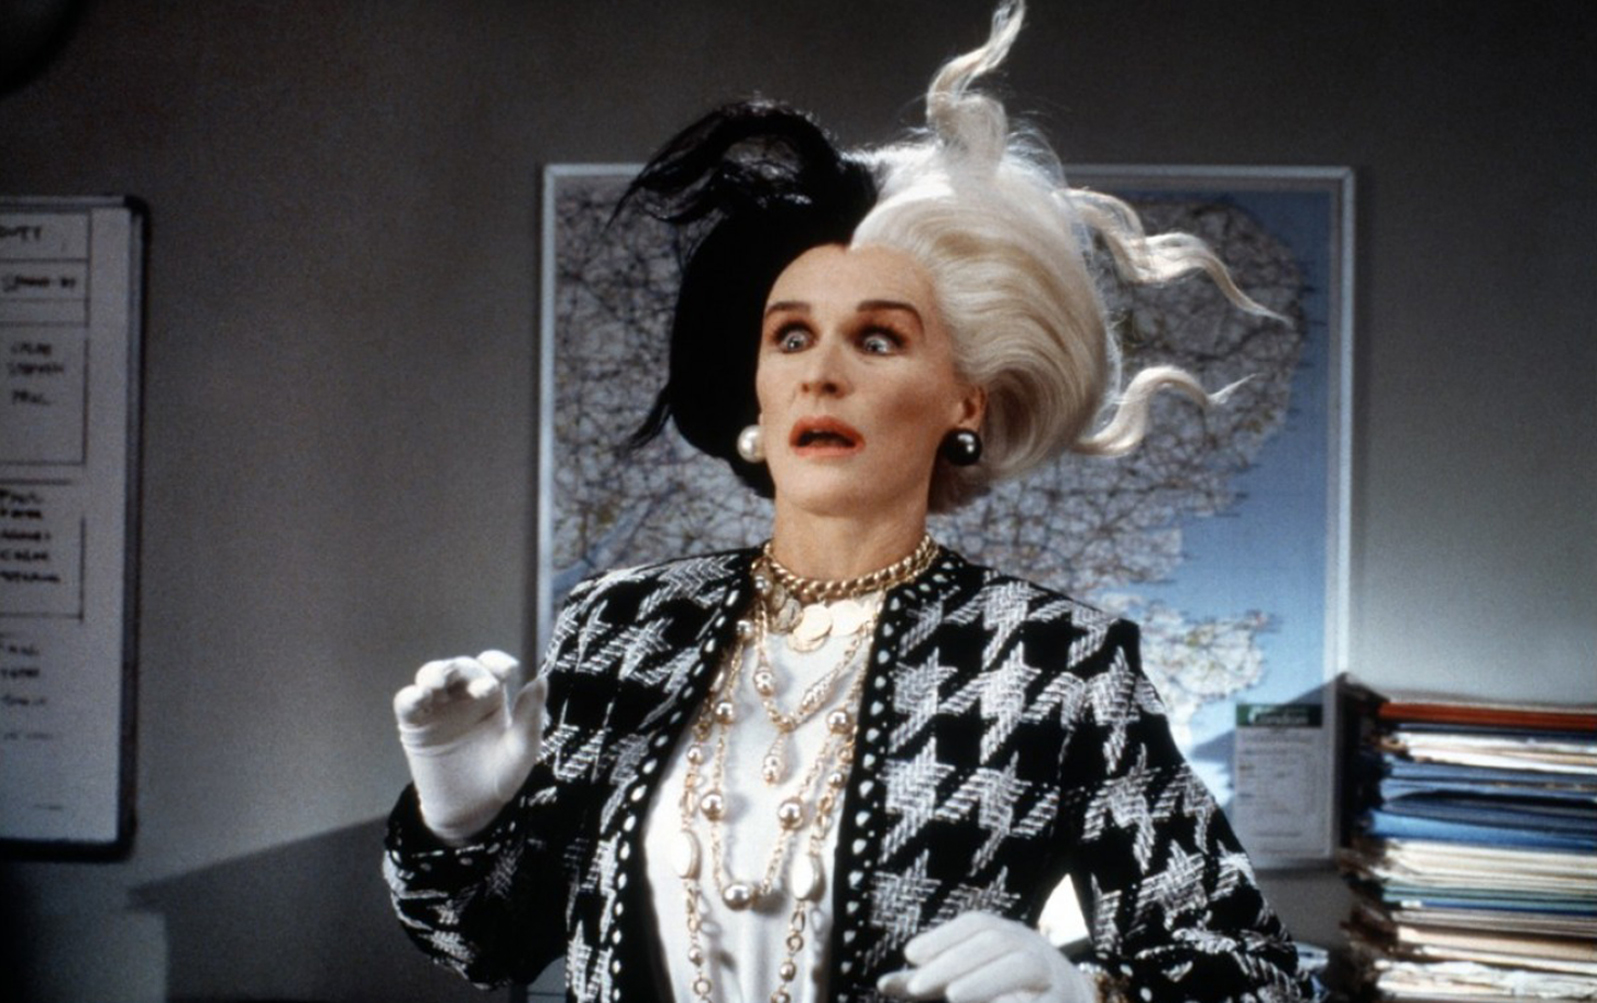 Glenn Close as Cruella De Ville in 101 Dalmatians